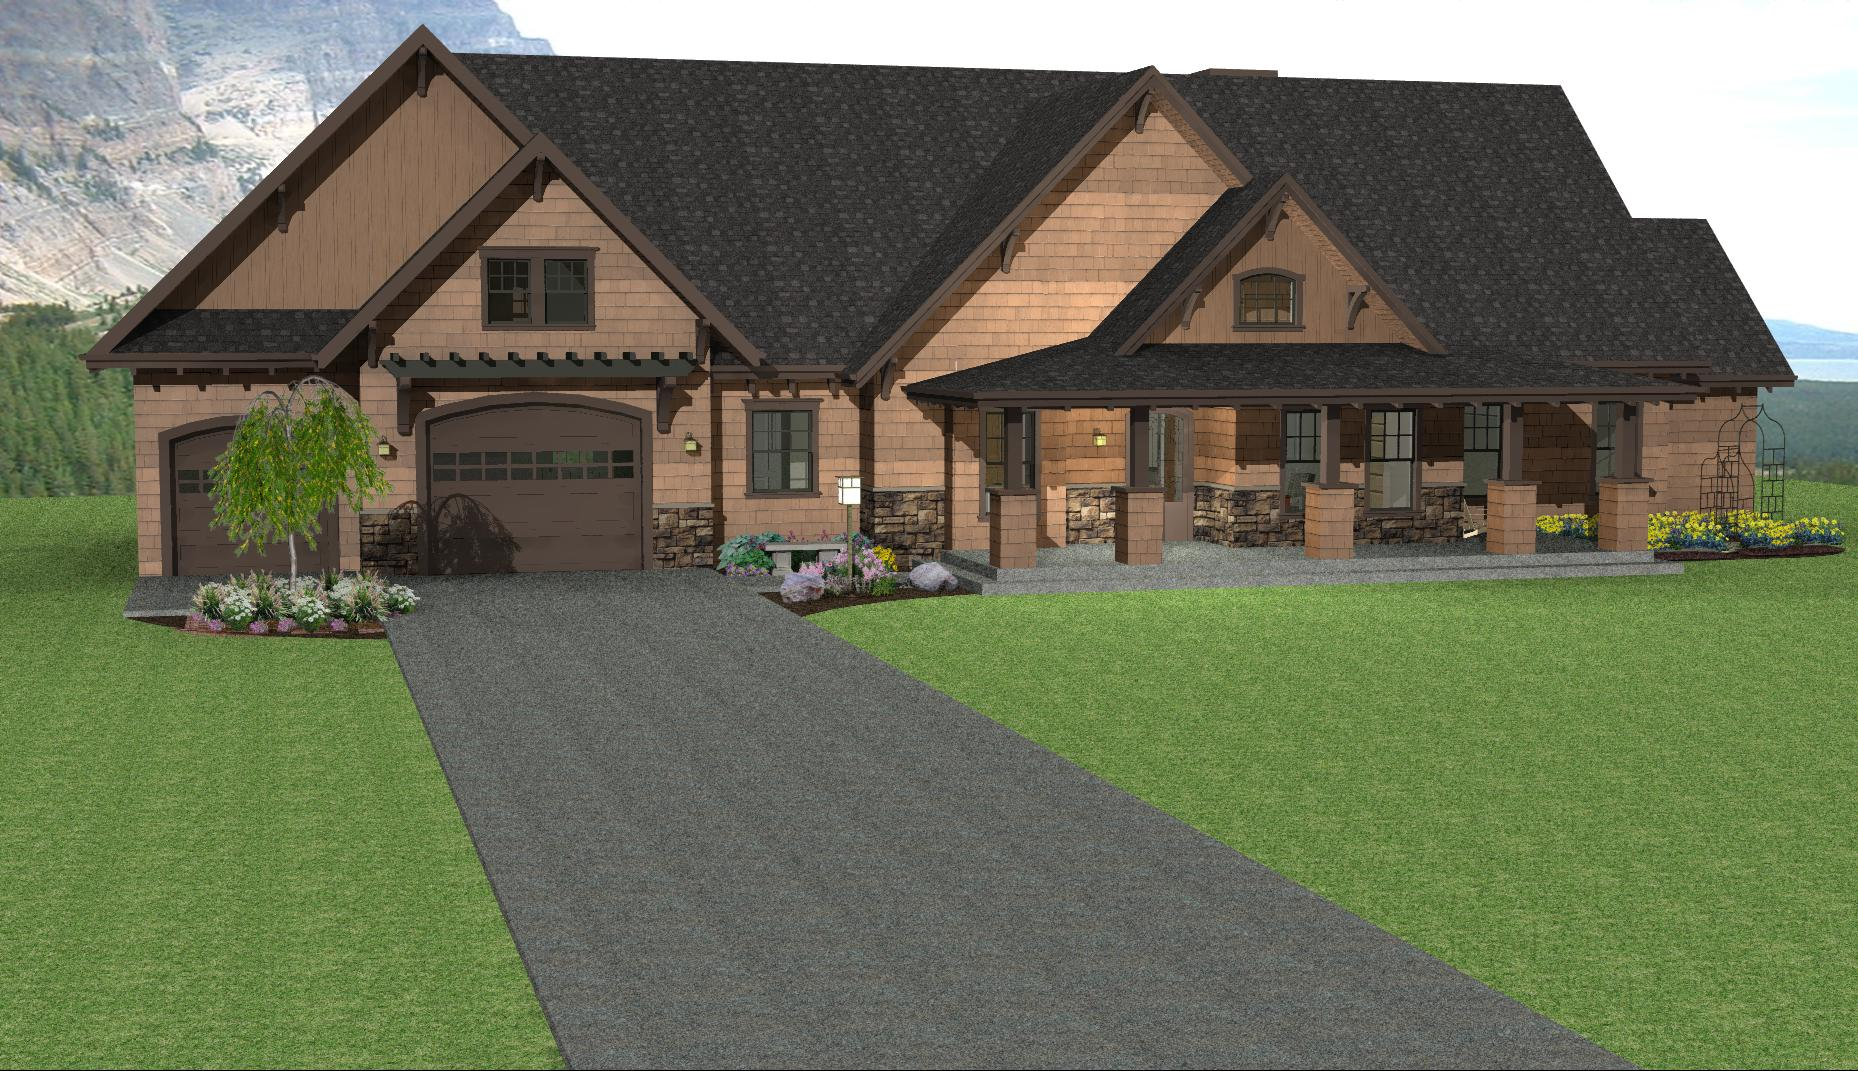 Ranch style home designs find house plans for Ranch style cabin plans